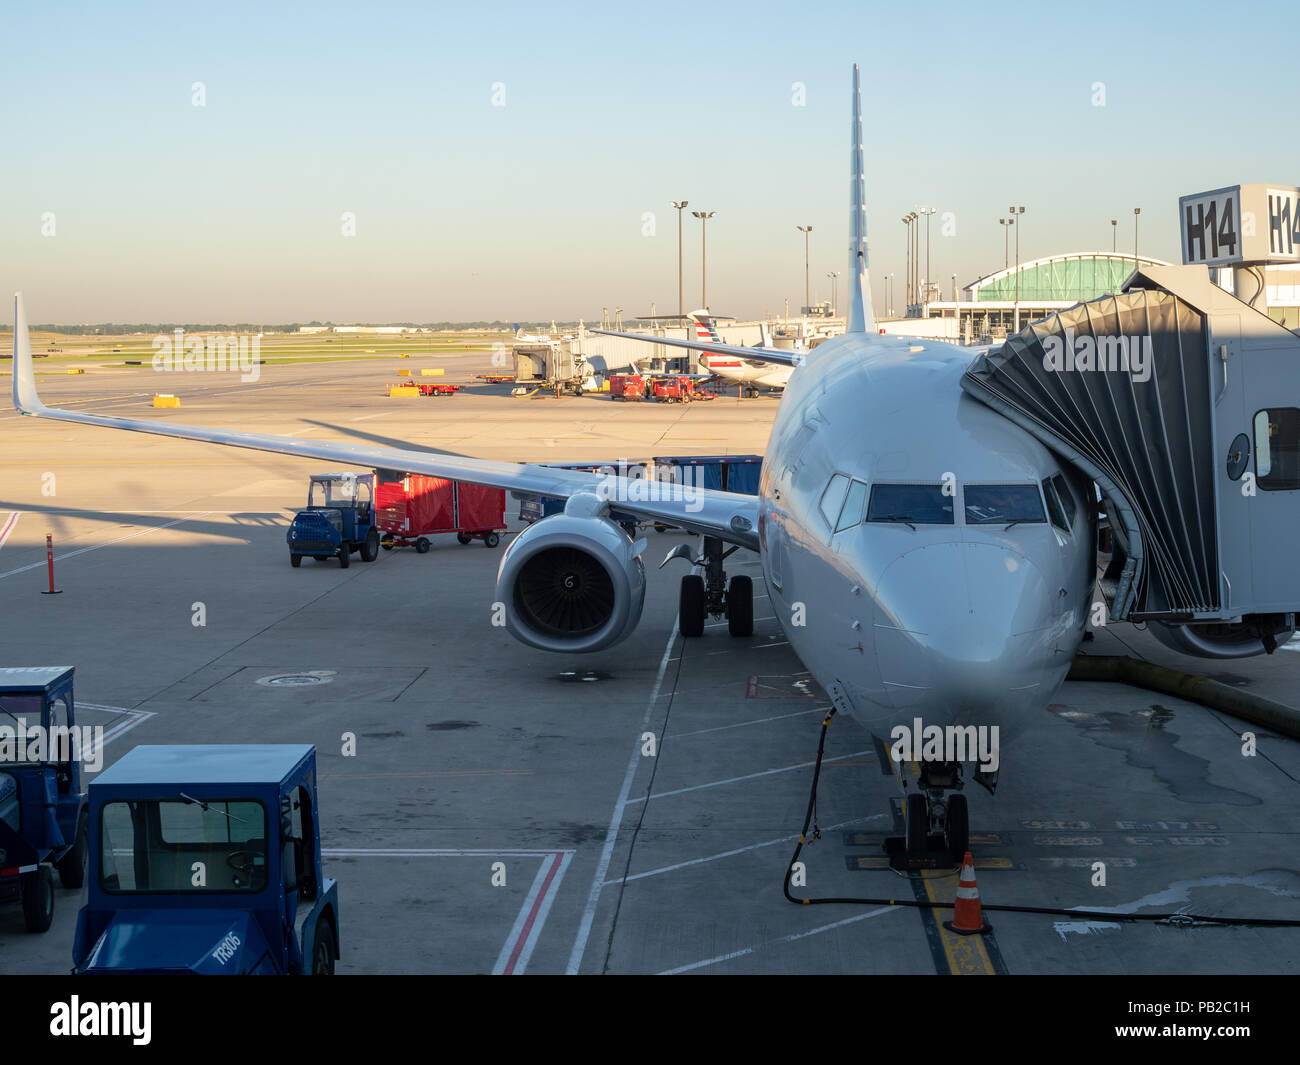 Airliner docked at airport terminal, refueling and letting passengers disembark - Stock Image